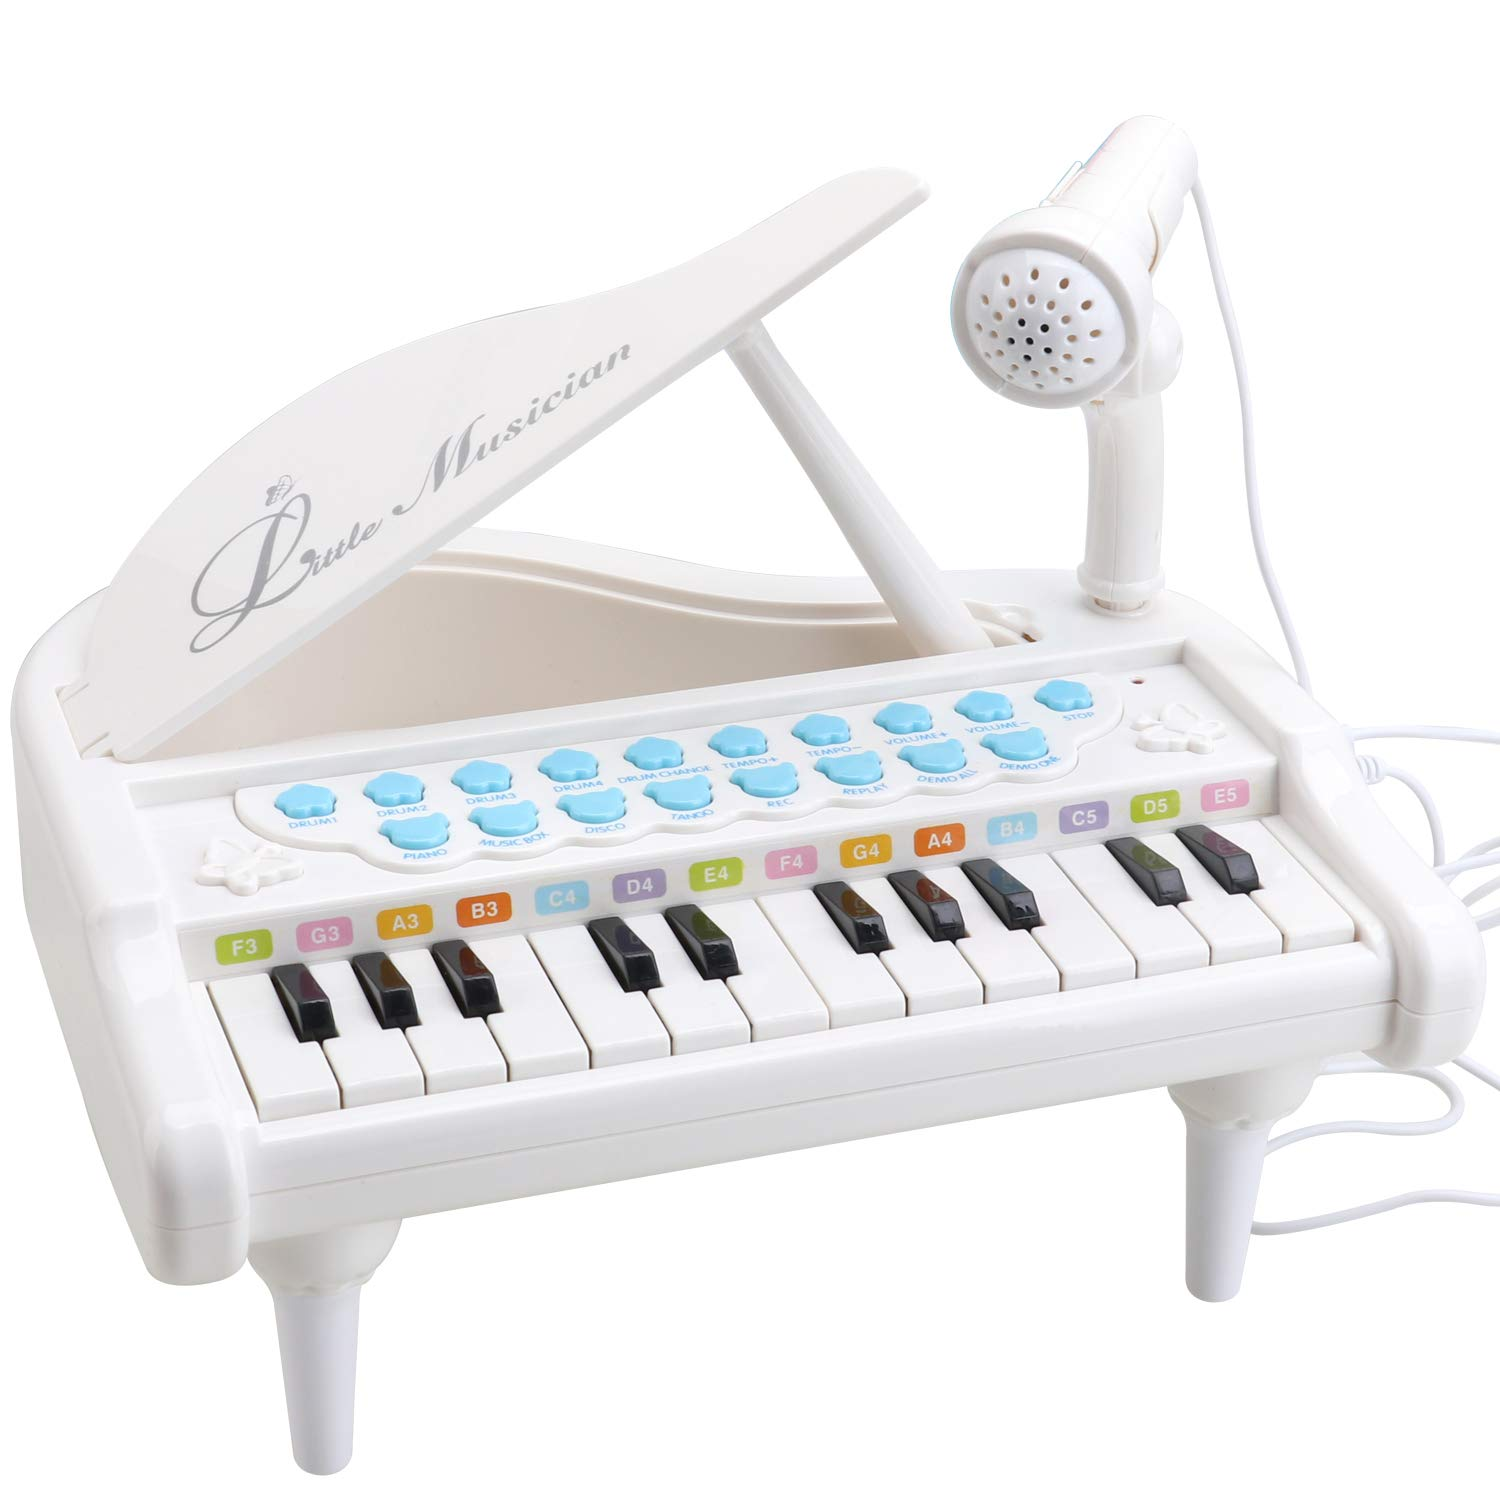 Amy&Benton Toy Piano for Baby & Toddler Piano Keyboard Toy for Girls Kids Birthday Gift Toys for 1 2 3 Year Old-- Multi-Functional, with Microphone, Portable, Mini, 24 Keys, White by Amy & Benton